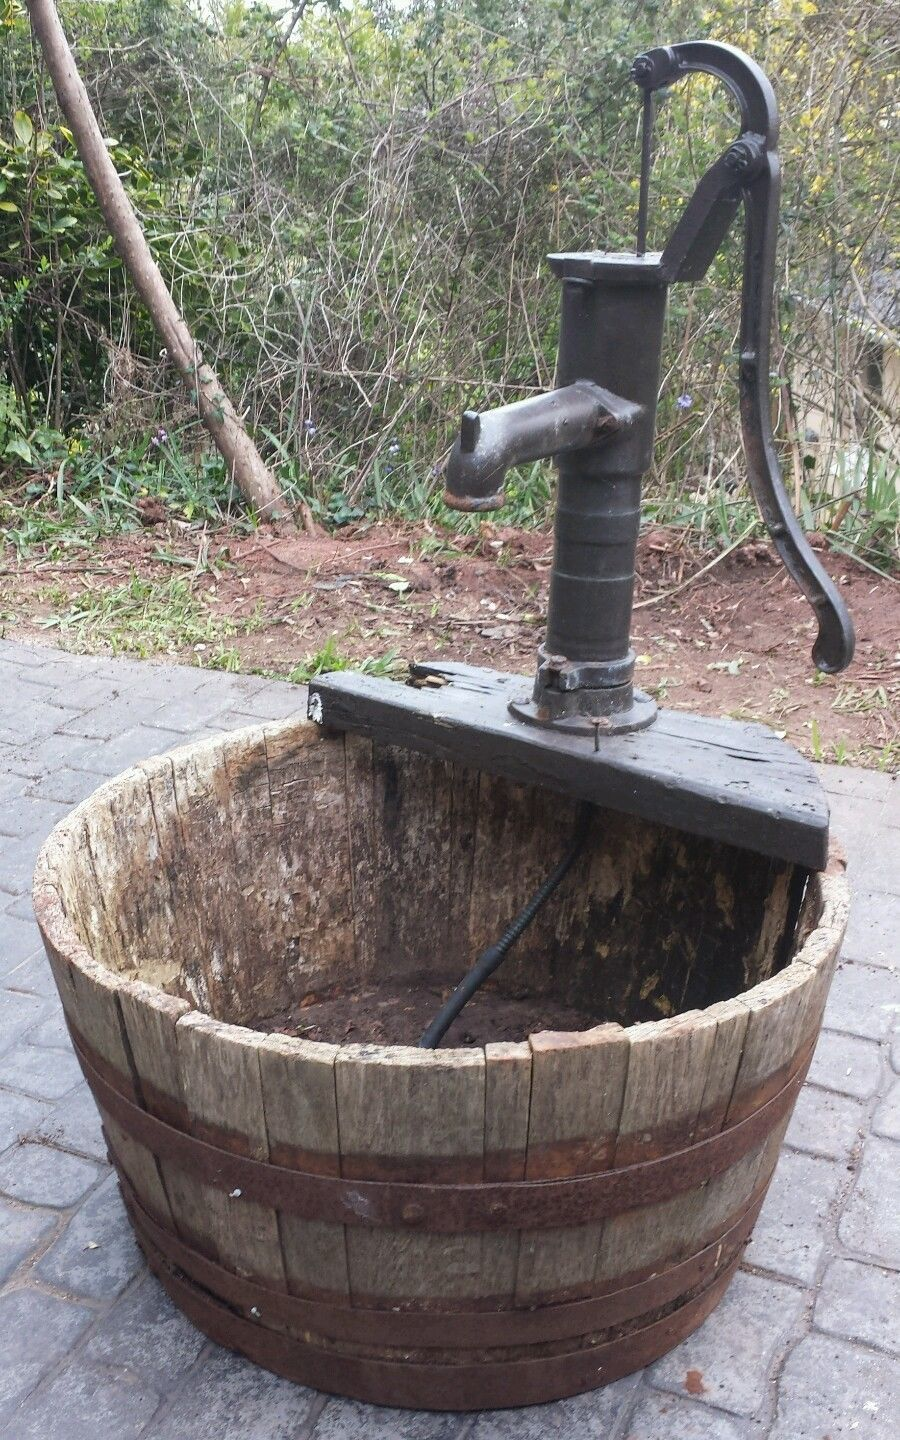 Vintage Antique Garden Water Feature Pump Cast Iron Oak Barrel Planter Tub In Antiques Ar Backyard Water Fountains Water Fountains Outdoor Fountains Outdoor